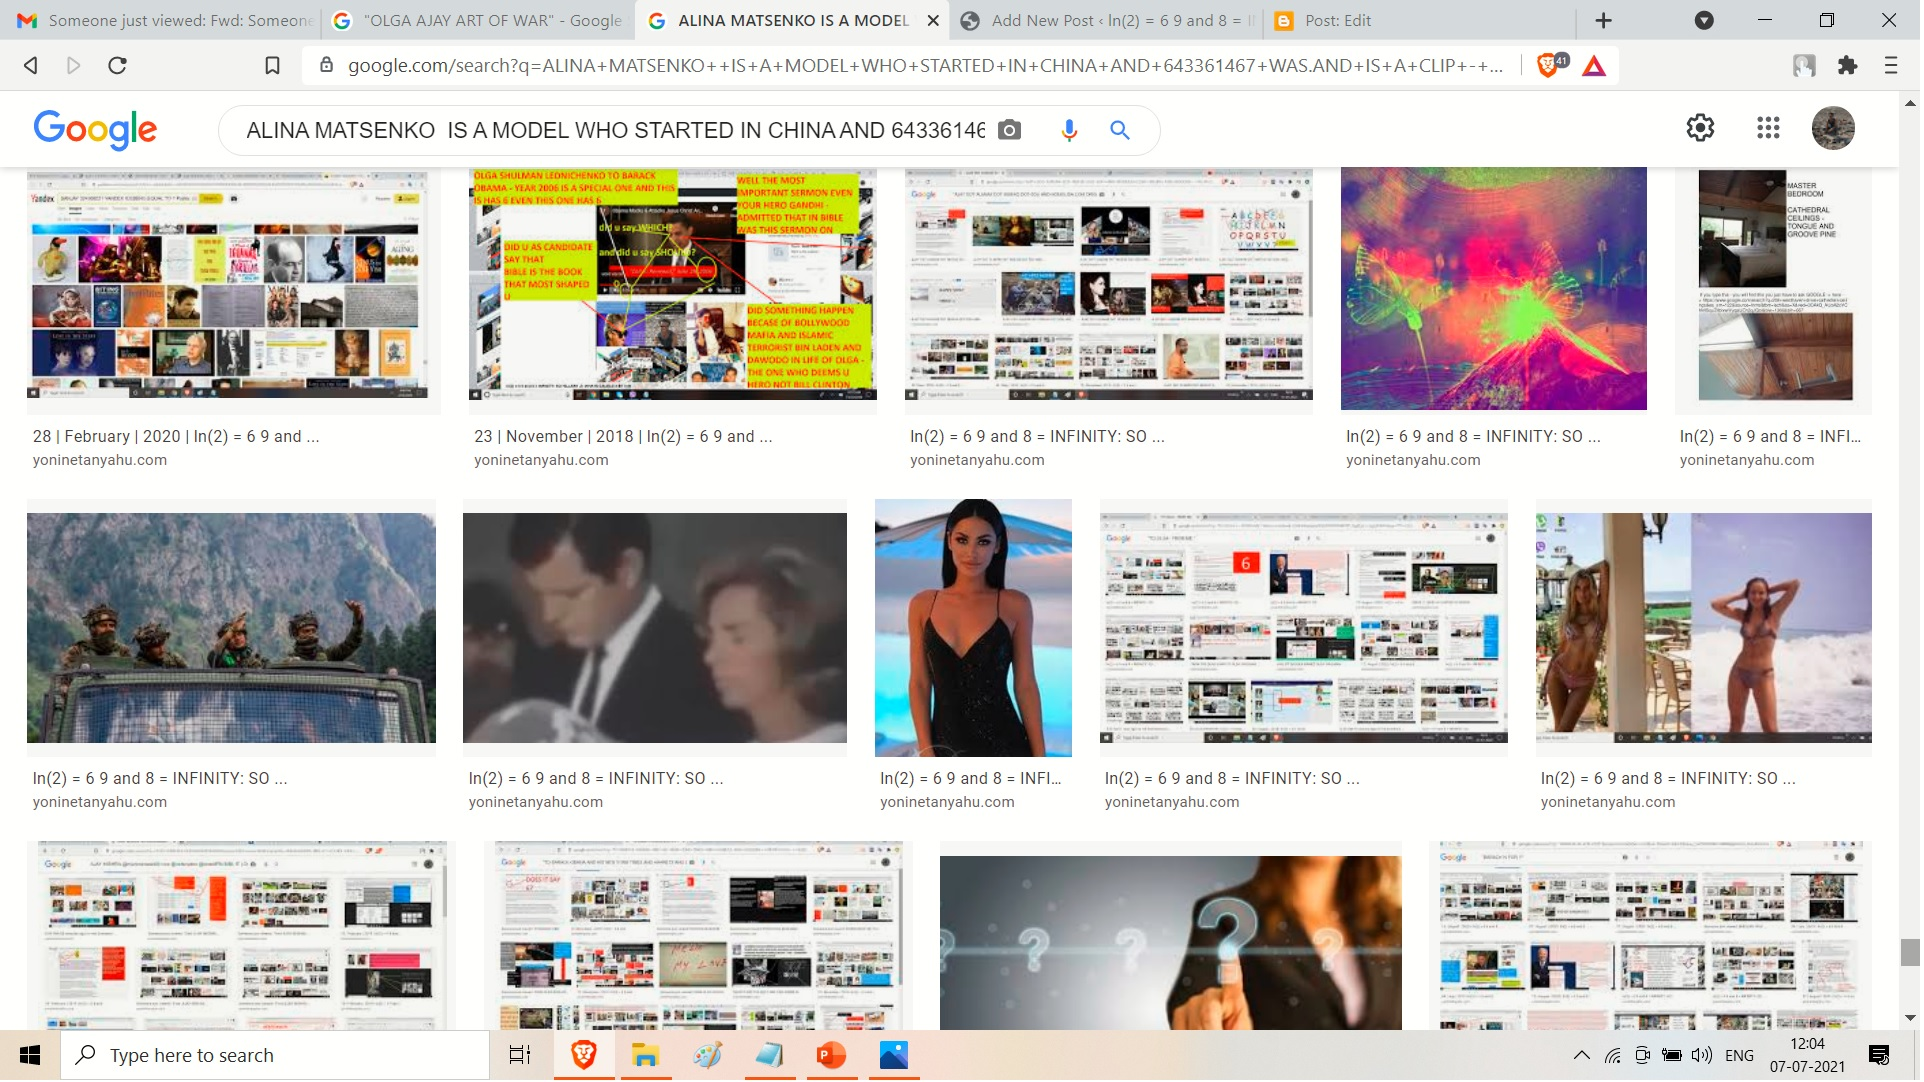 --AND HERE IS ALINA MATSENKO A MODEL WHO SATRTED IN CHINA. UI YES YES MY AIR IN 1987 IIT JEE WAS 3980 WHCH -= UK LYUS RAIN MENAS LONDON PLUS RAIN MENAS MAYFAIR IN LCUKNOW LONDON AND MONSOON----